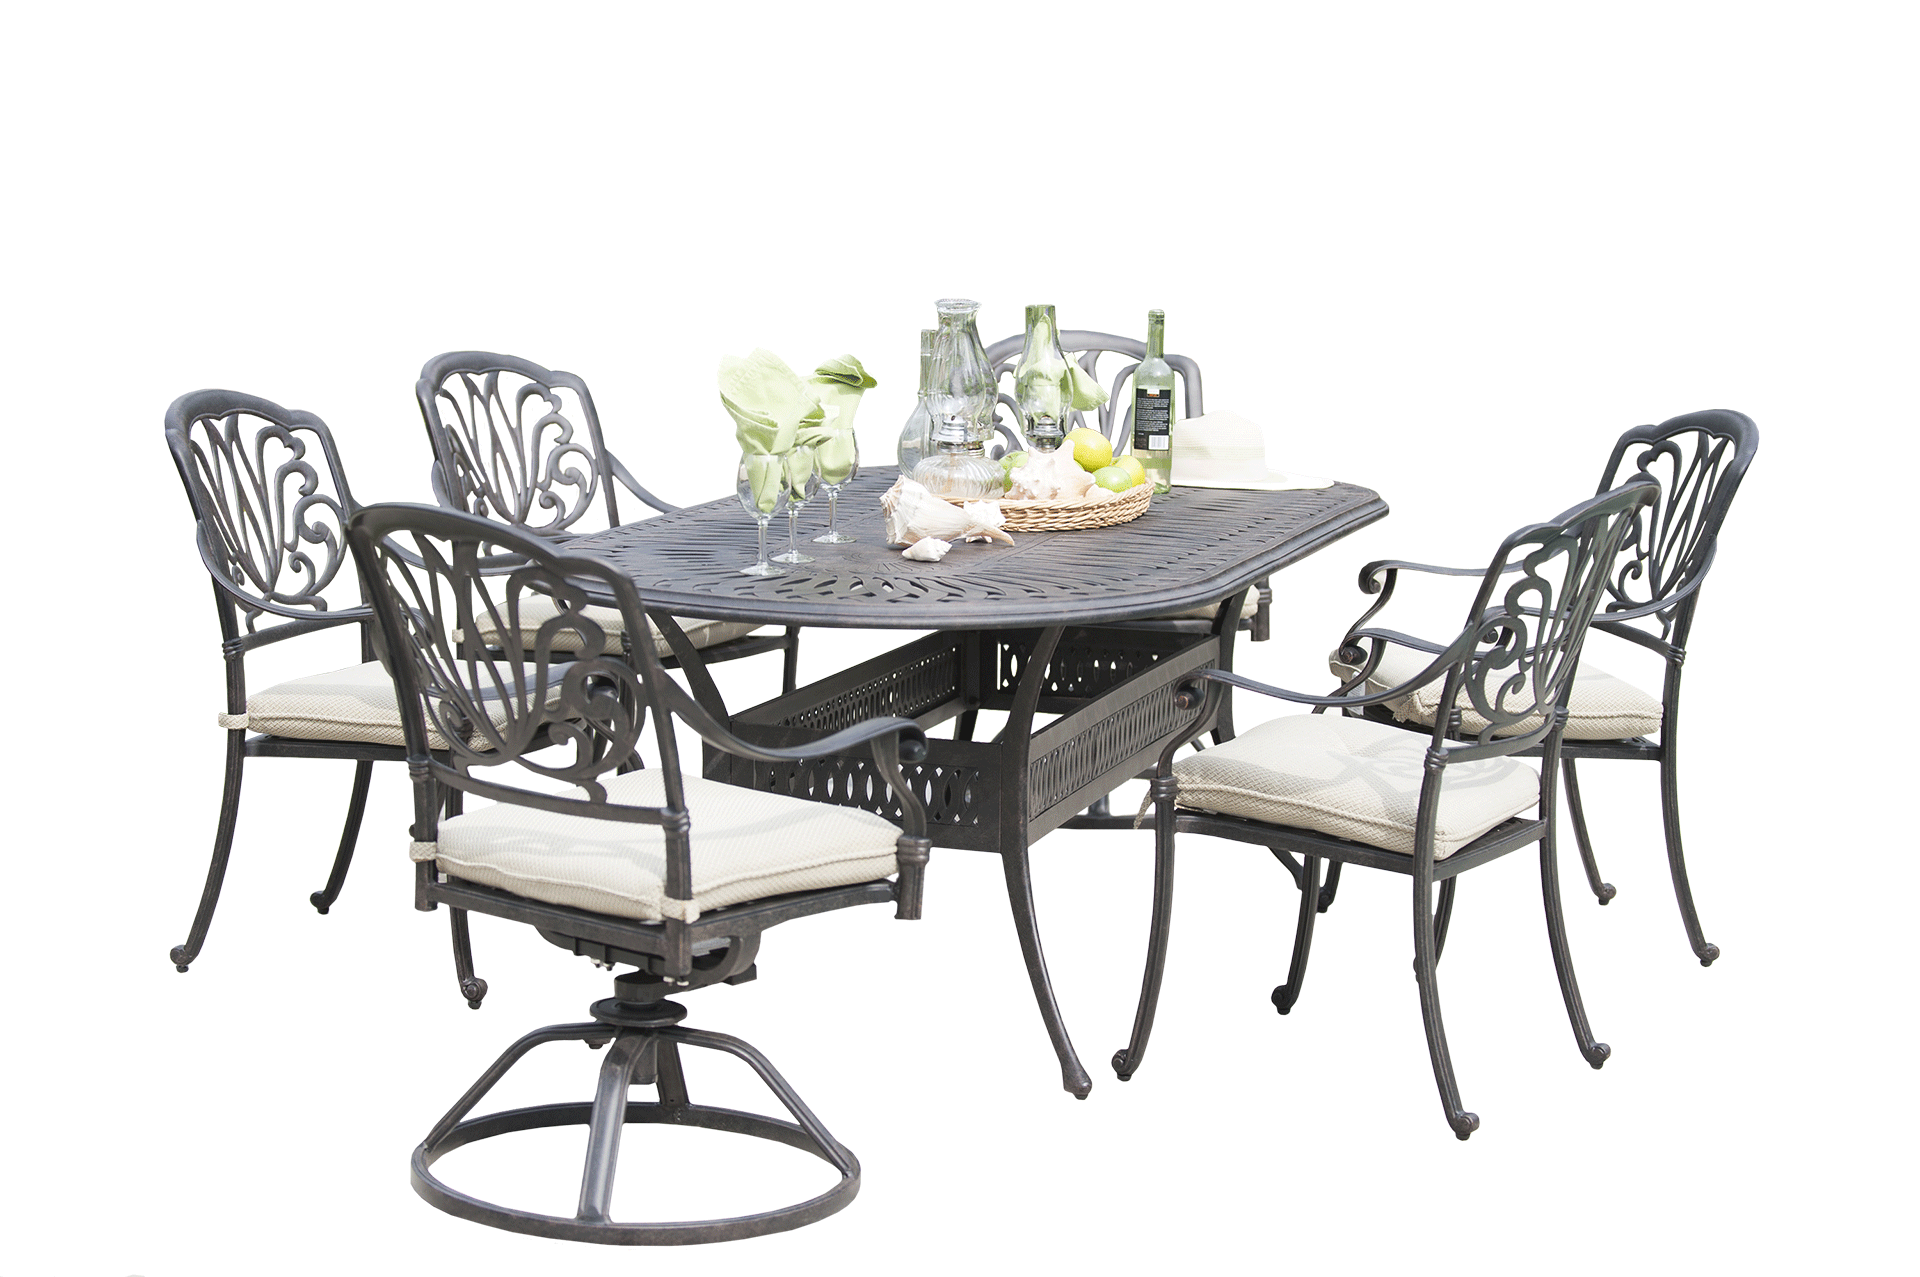 Patio Table PNG File.